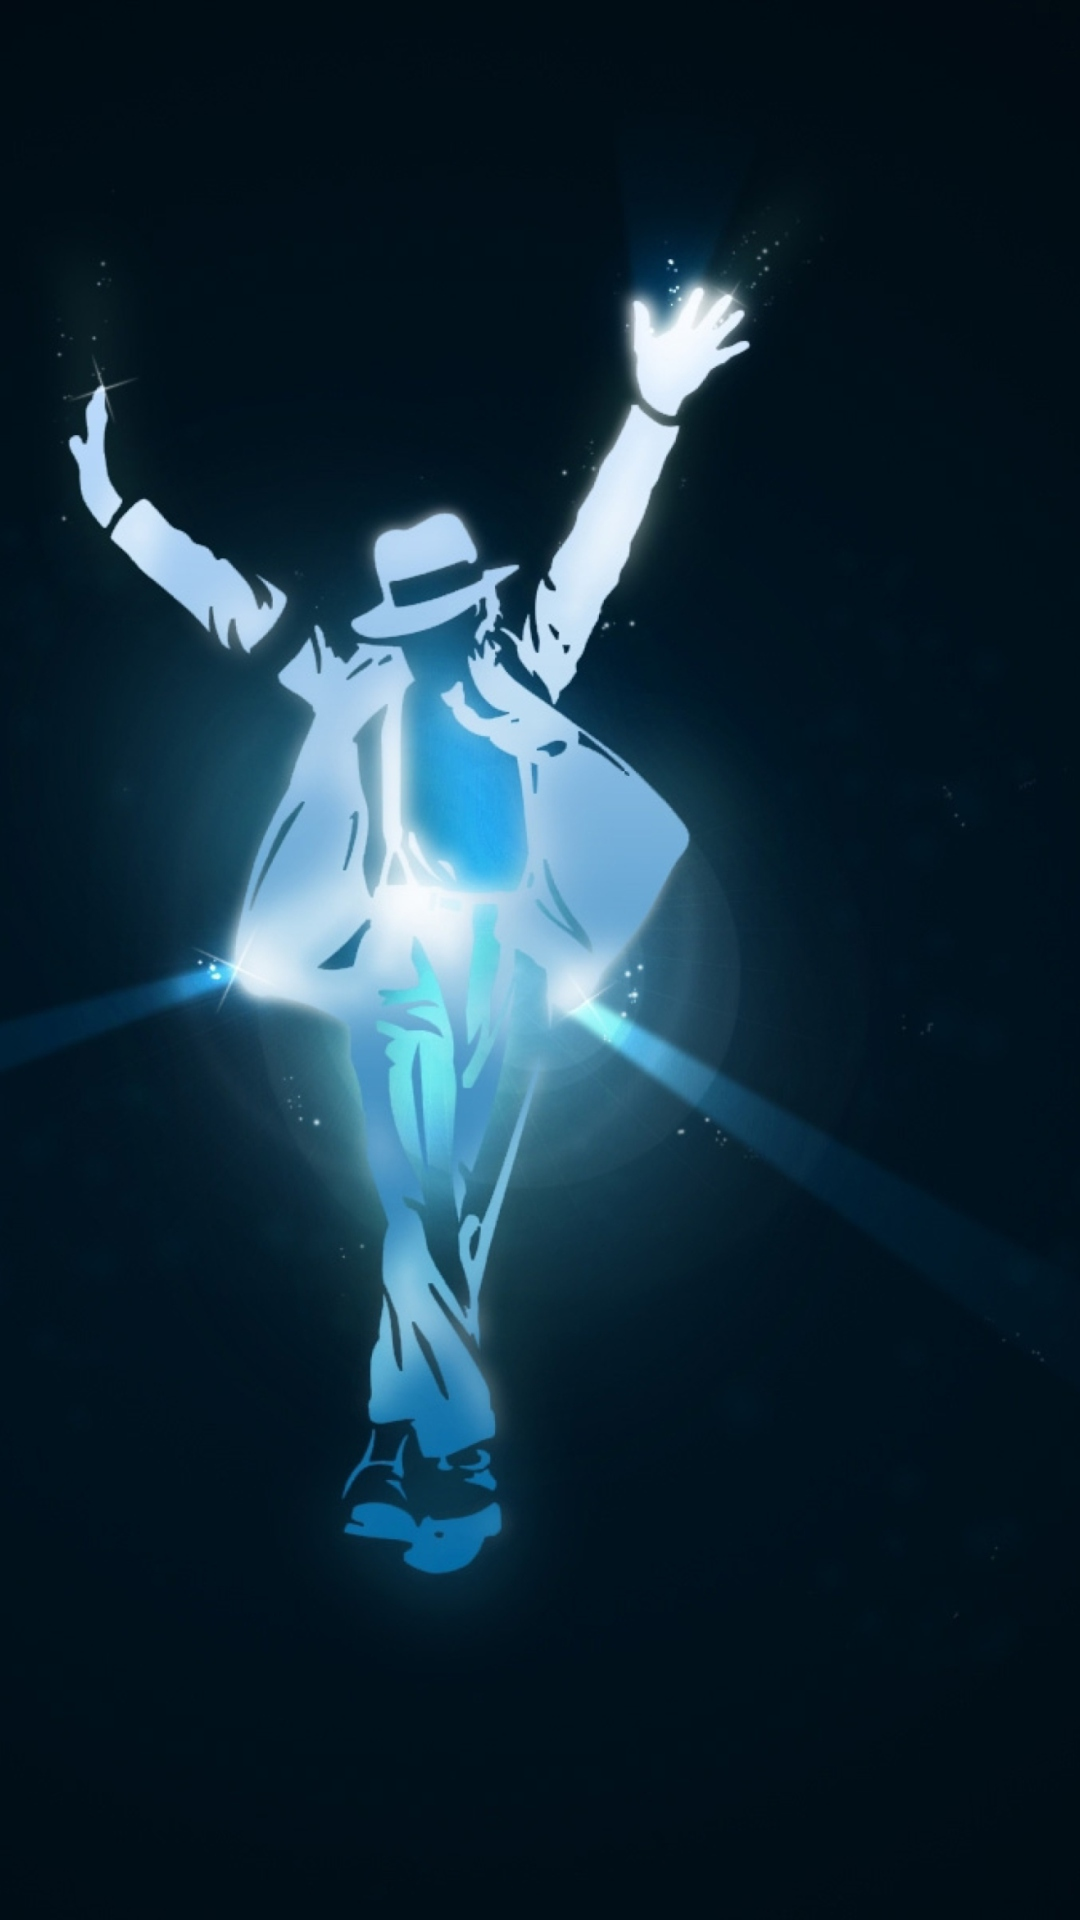 Download 3d Live Wallpaper For Android Mobile Download Michael Jackson Iphone Wallpaper Gallery